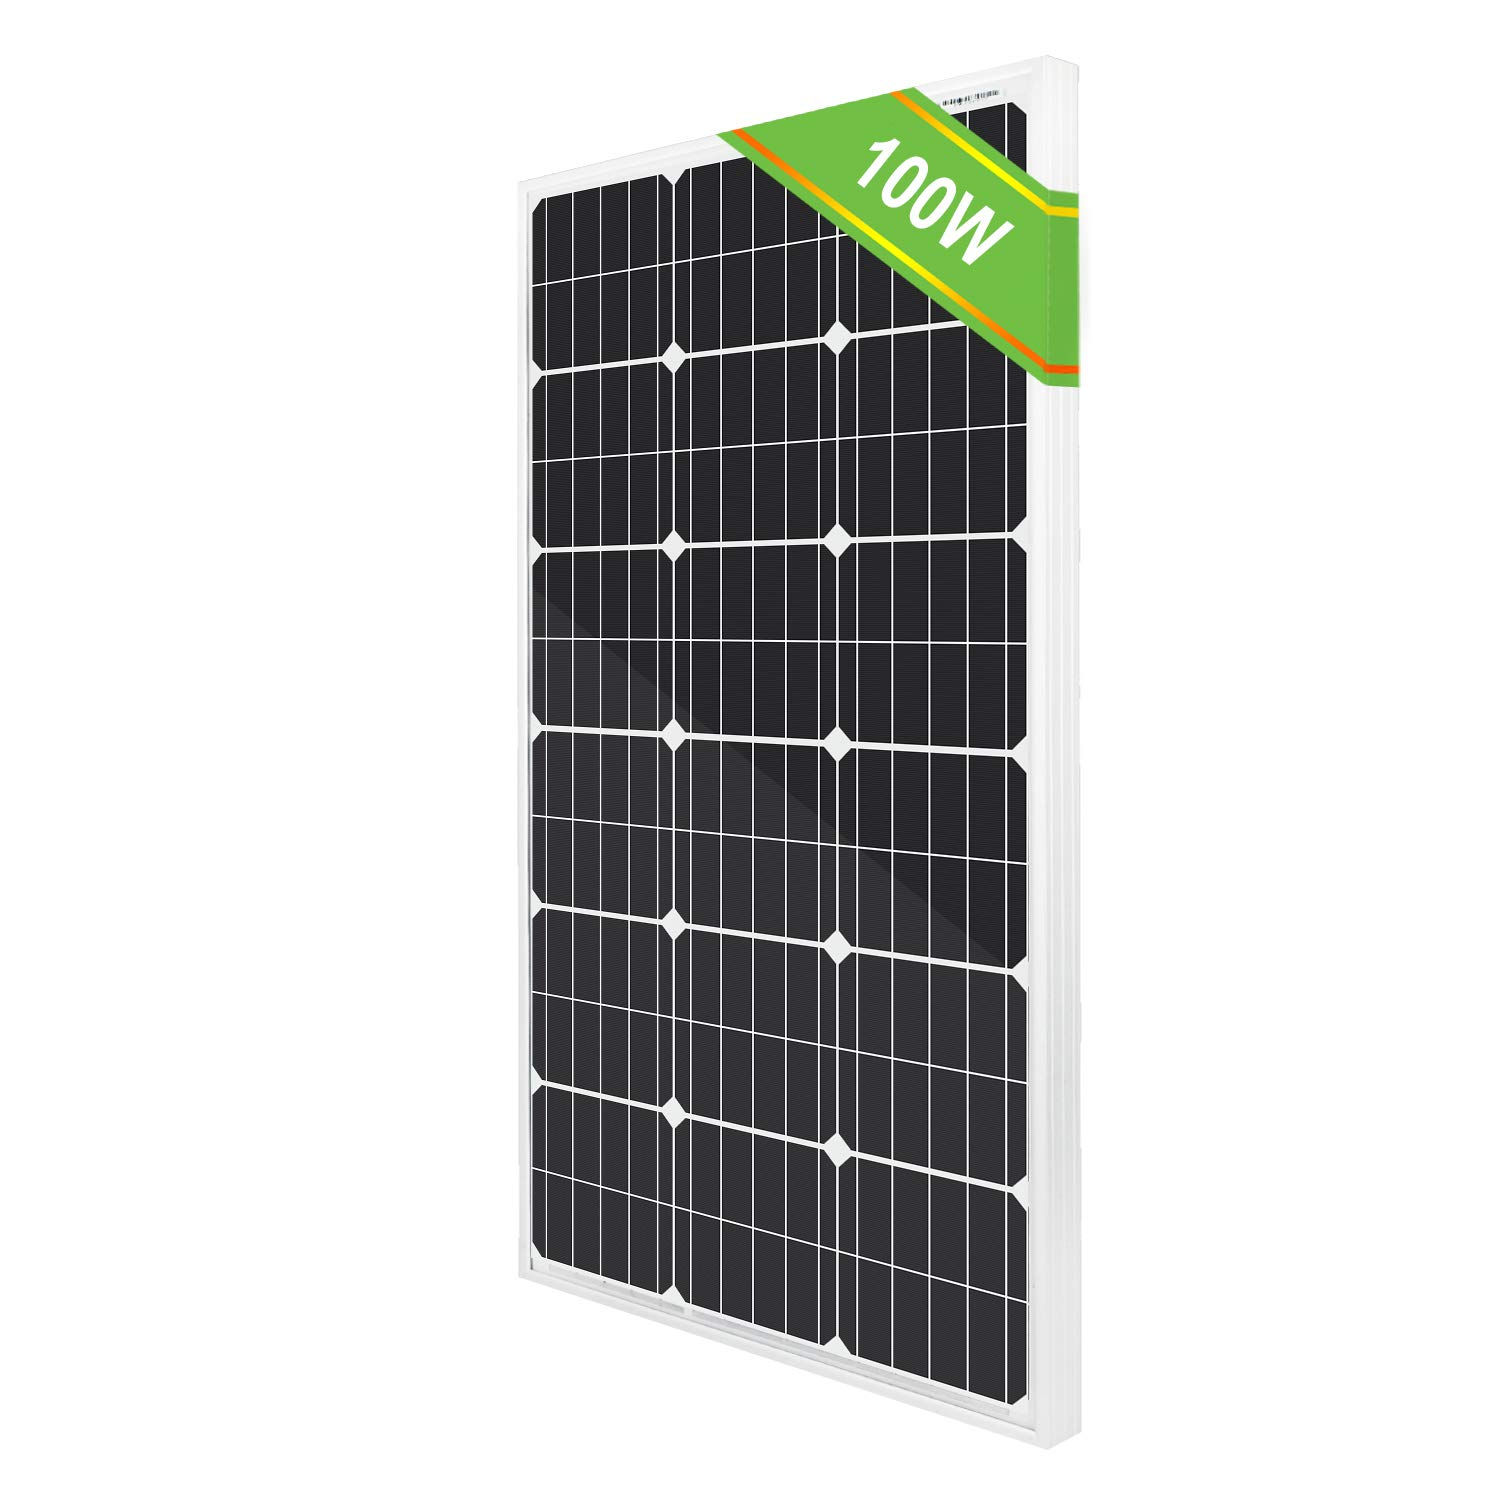 ECO-WORTHY 100 Watts 12 Volts Monocrystalline Photovoltaic Solar Panel High Efficiency Module for 12 Volt Battery Charging RV Marine Boat Off Grid Upgrade